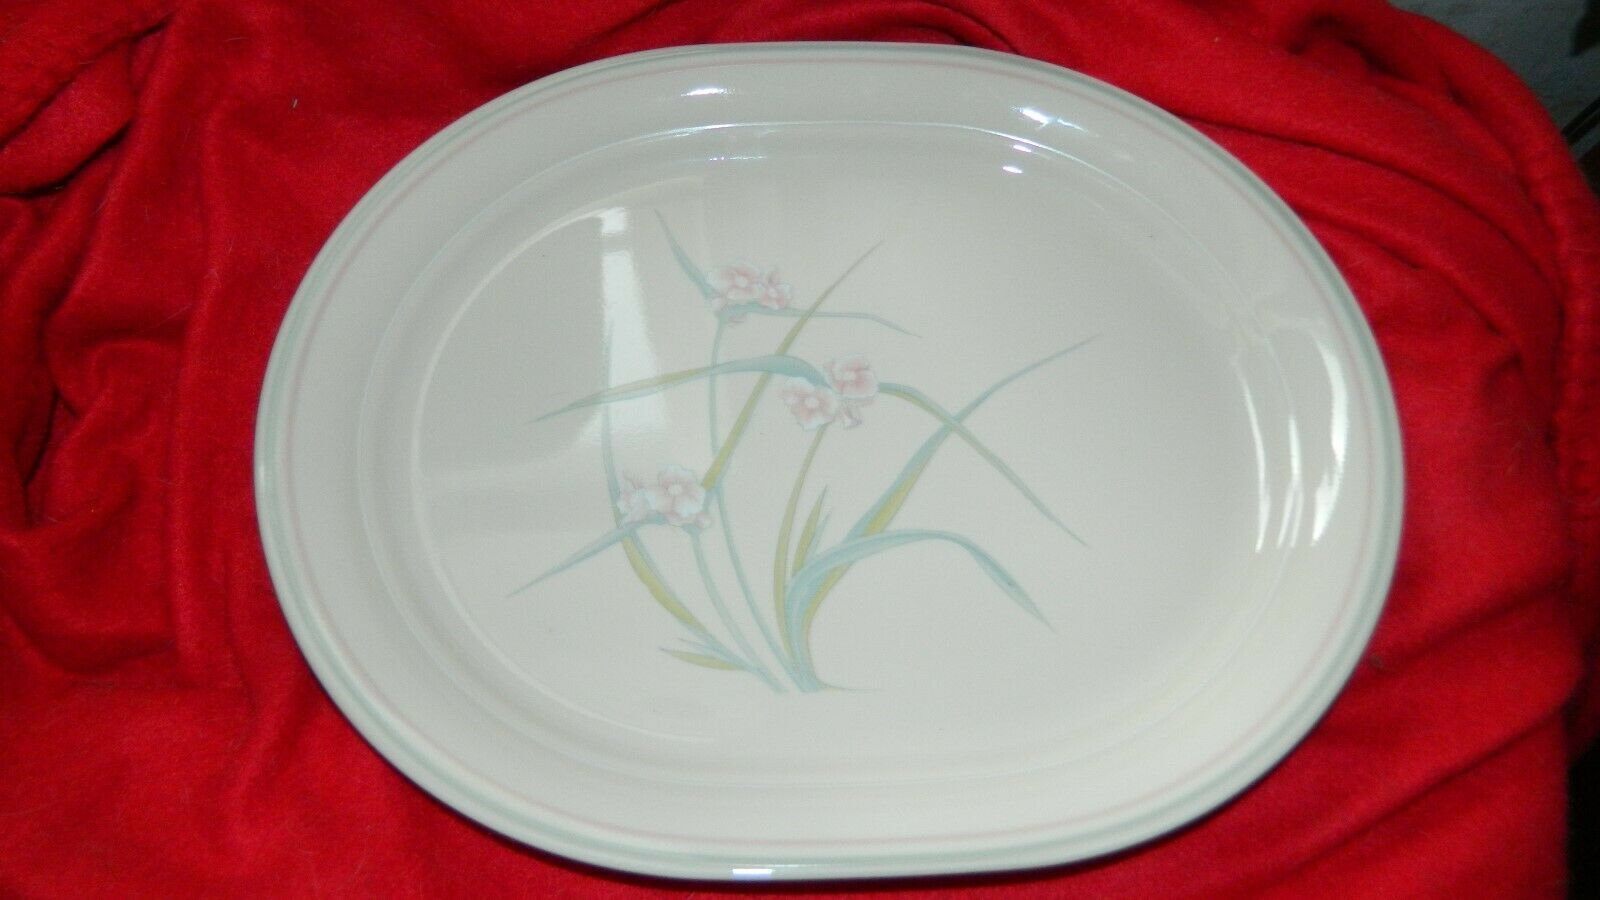 Primary image for CORELLE 12.25 IN OVAL SERVING PLATTER VARIATION SPRING POND VGUC FREE USA SHIP